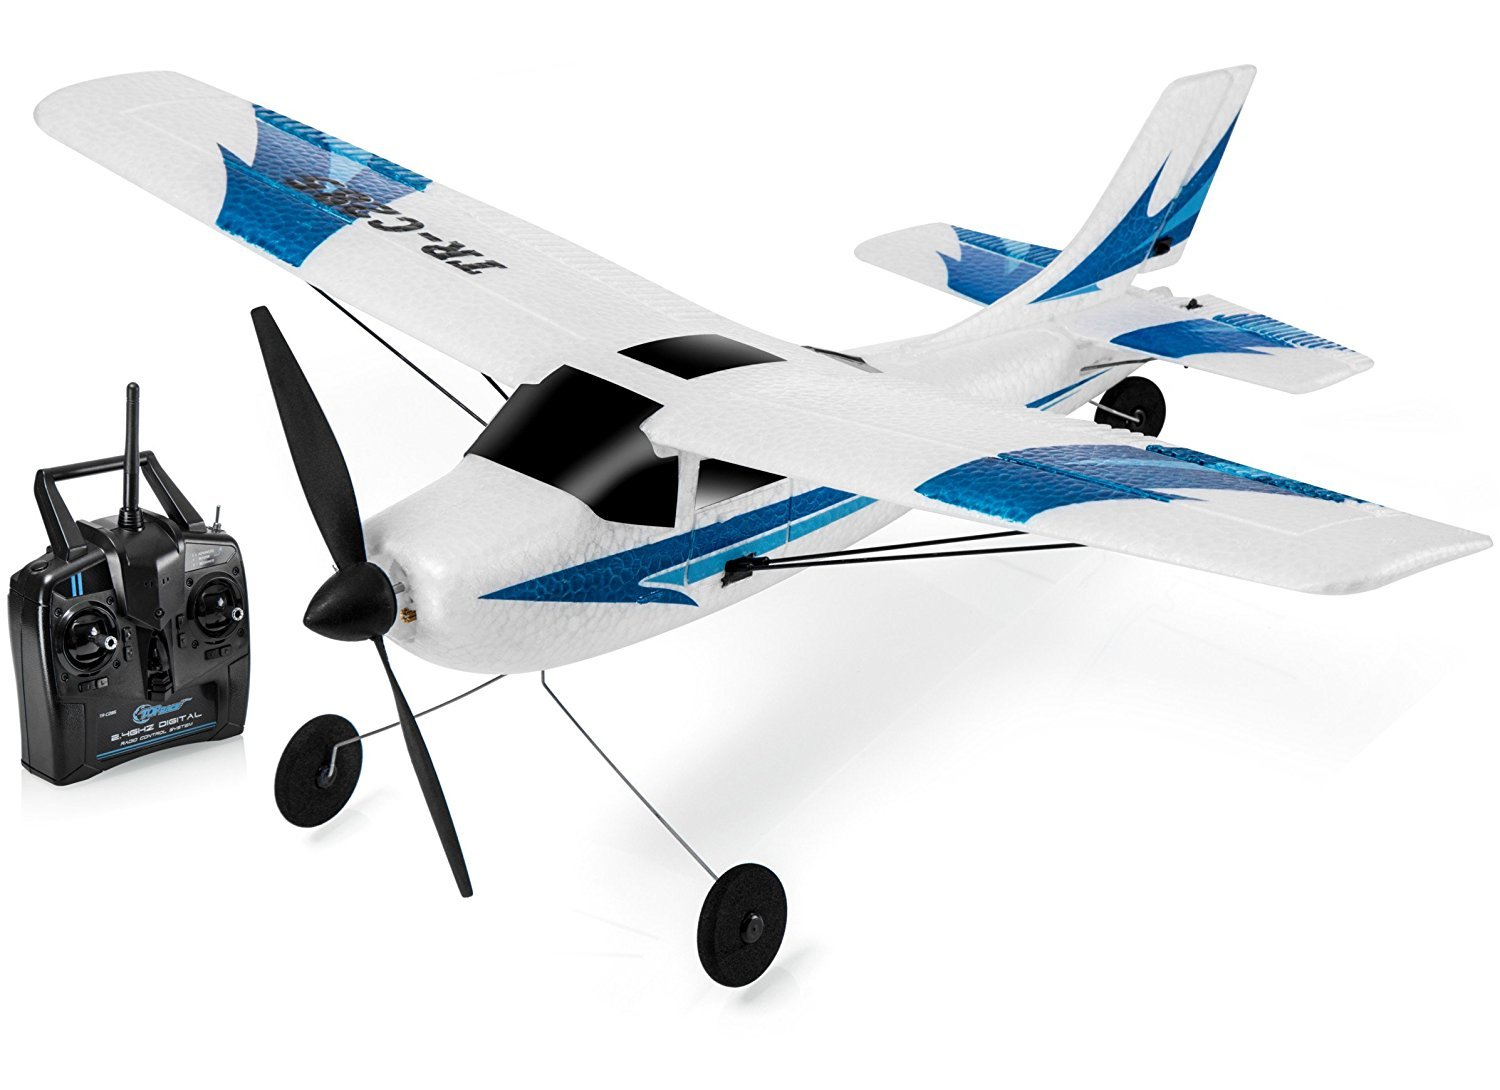 Top Race Remote Control Airplane, 3 Channel RC Airplane Aircraft Built in 6 Axis Gyro System Super Easy to Fly... by Top Race